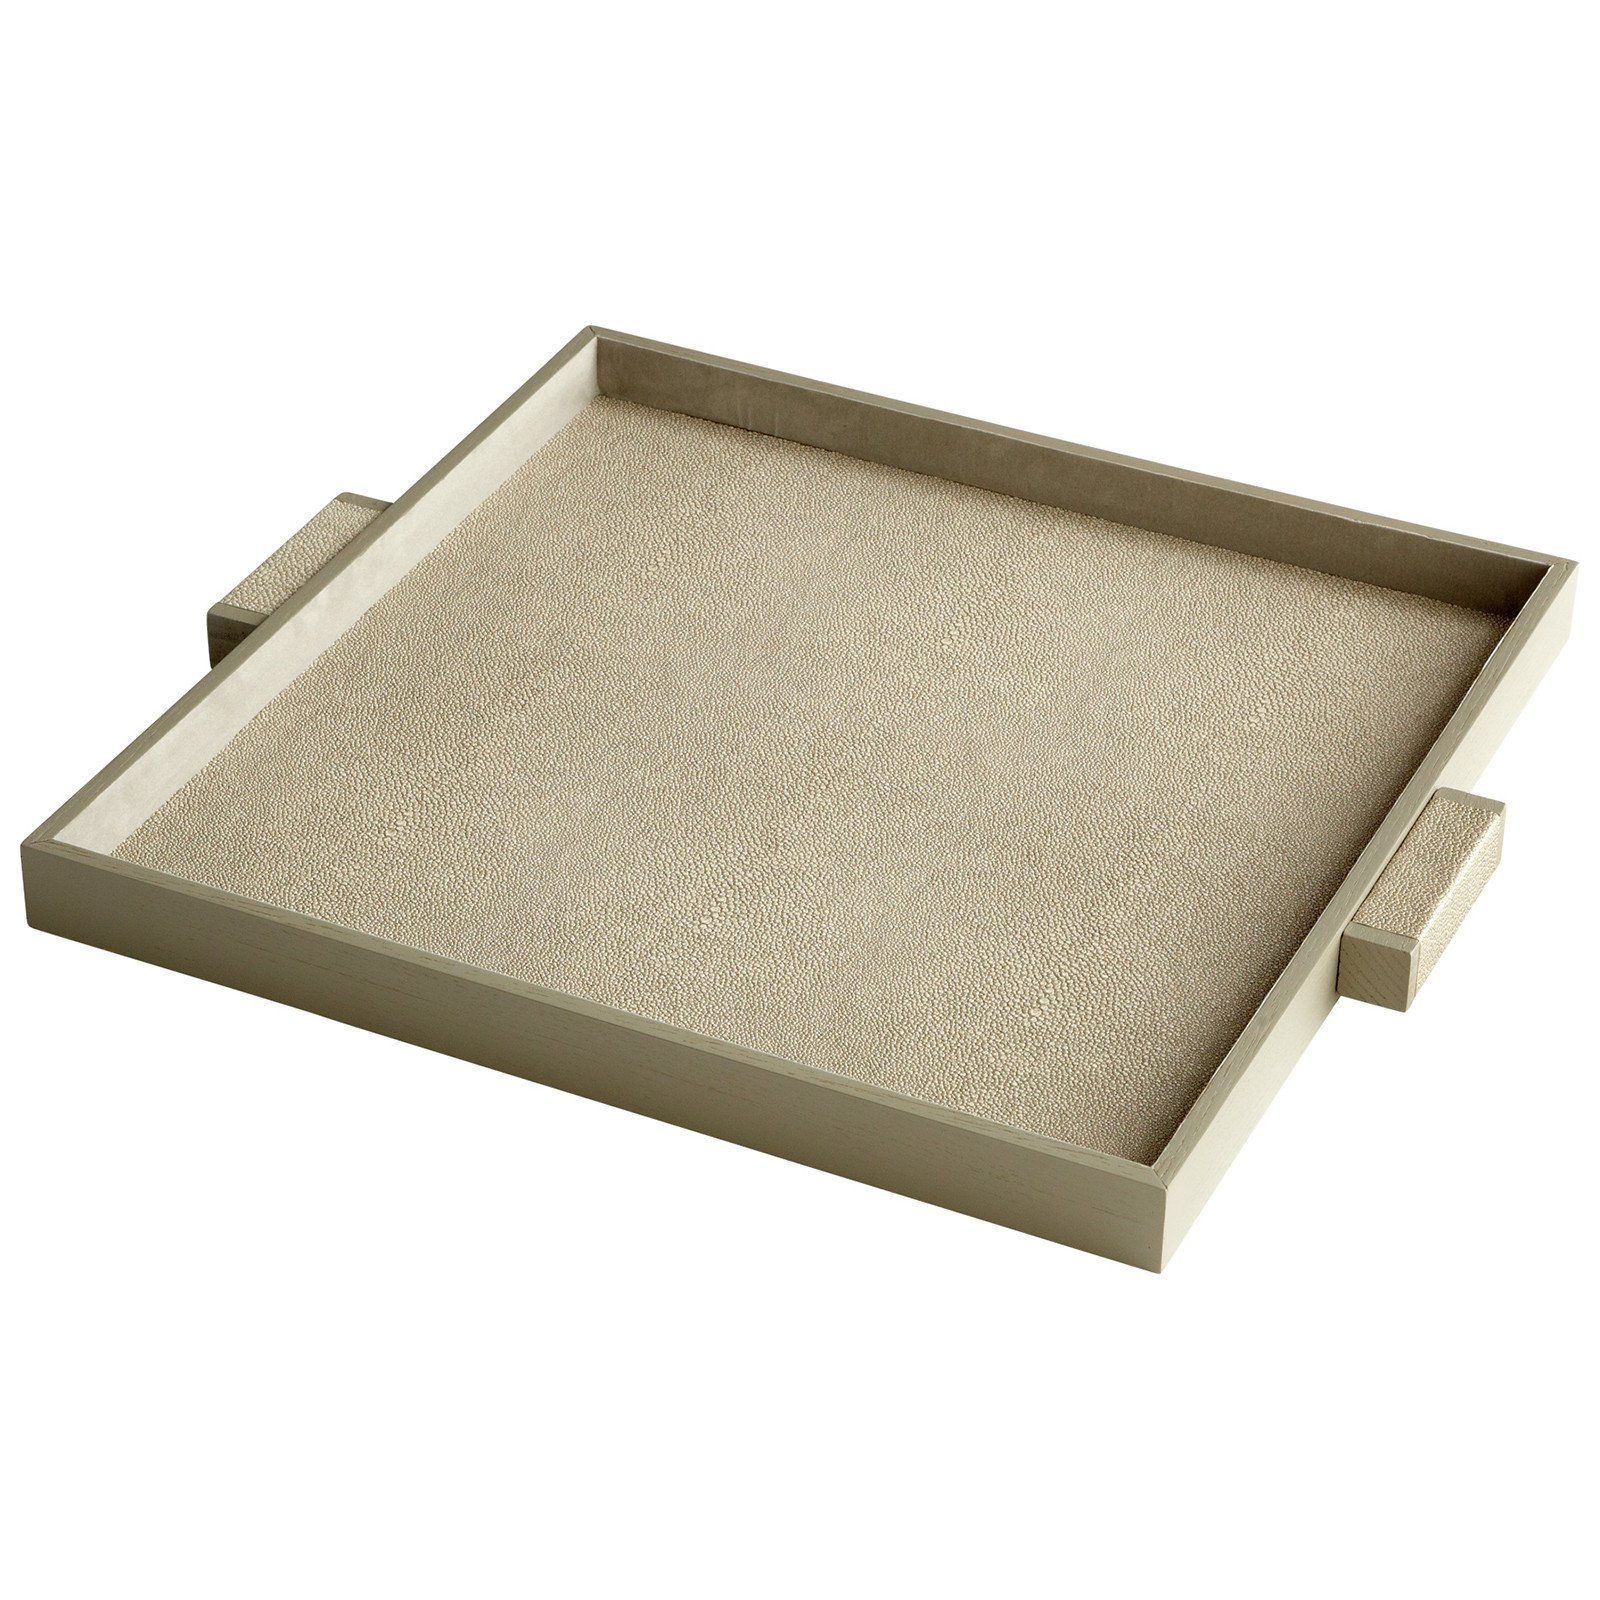 Sensational Brooklyn Tray In Shagreen Products Large Tray Wood Tray Andrewgaddart Wooden Chair Designs For Living Room Andrewgaddartcom